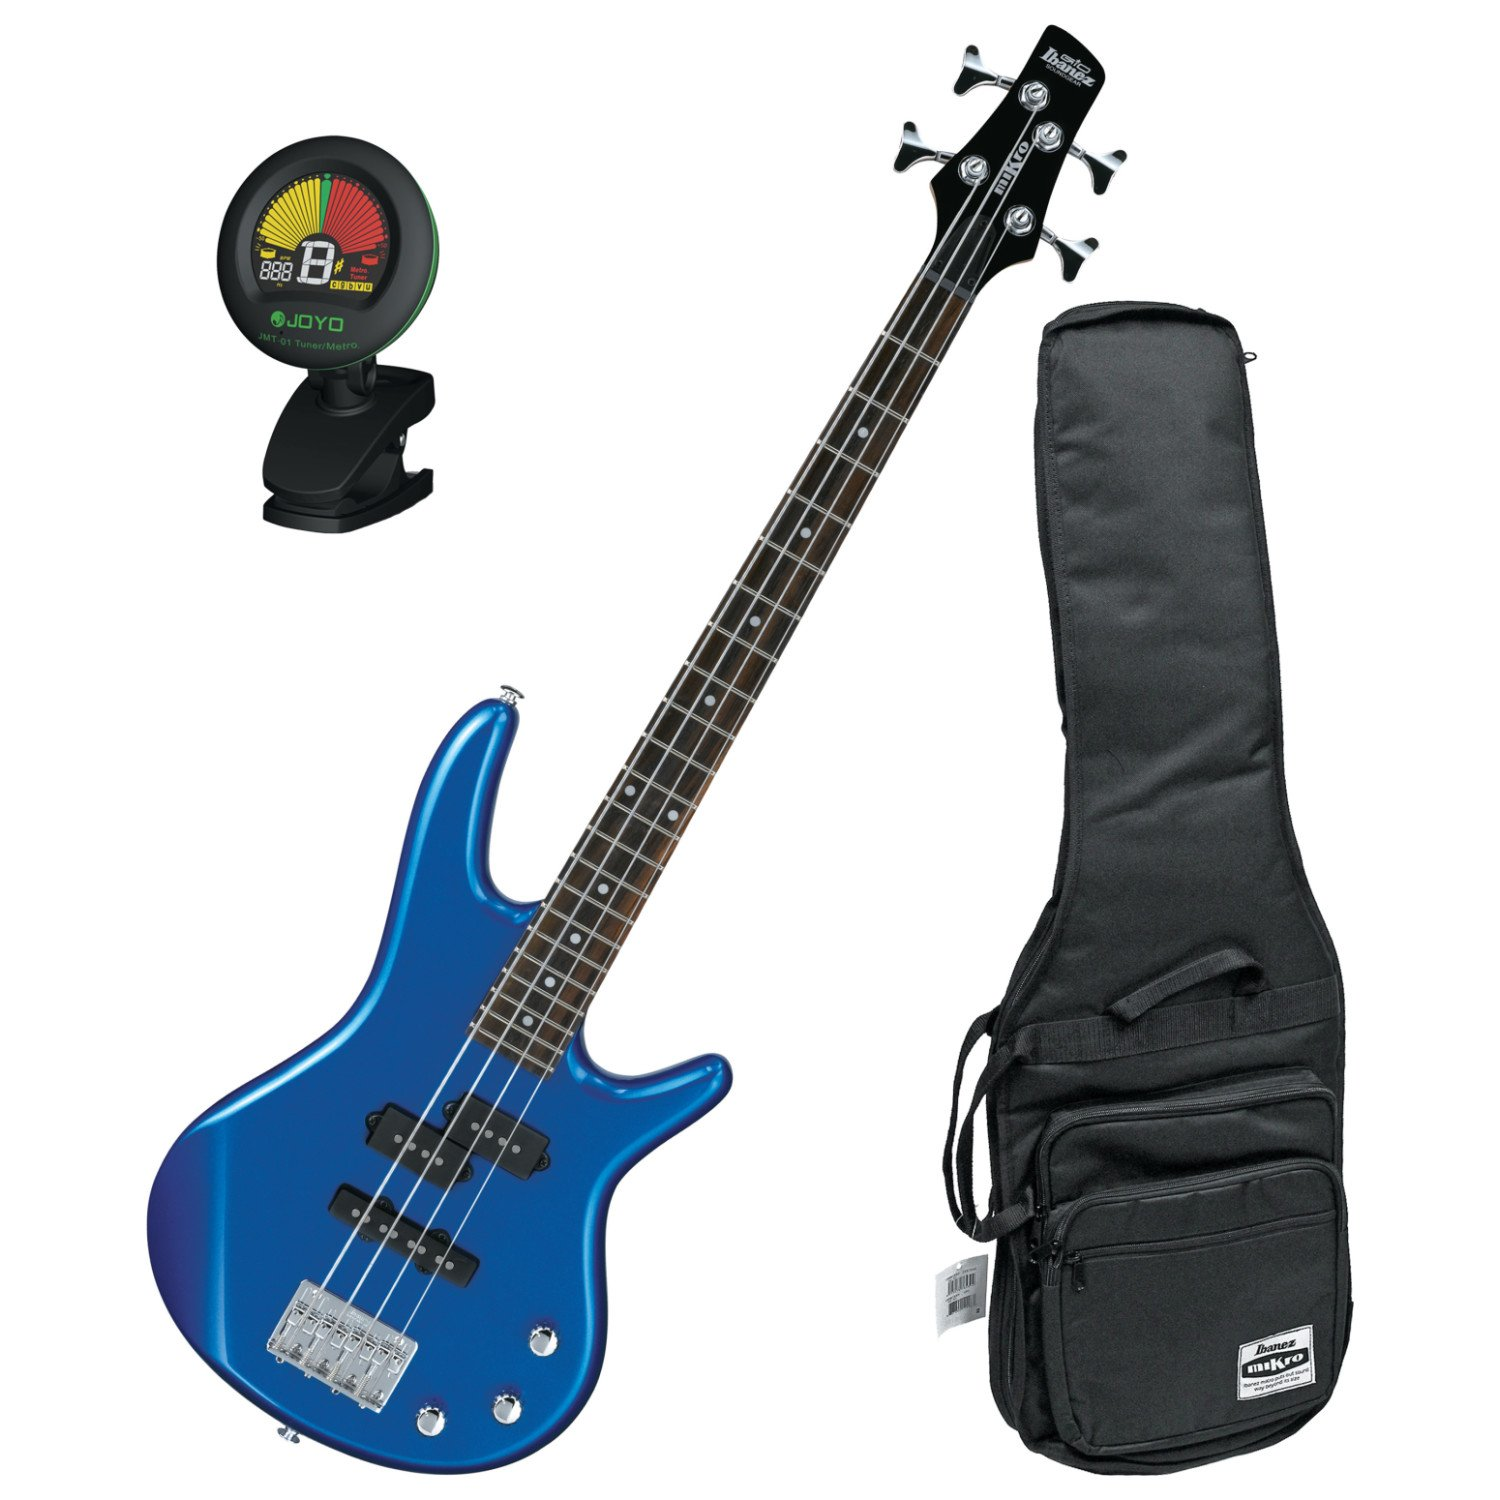 Ibanez GIO GSRM20SLB Mikro Starlight Blue 28.6 Scale 4 String Bass Guitar w/ Gig Bag and Tuner! GSRM20SLB BUNDLE